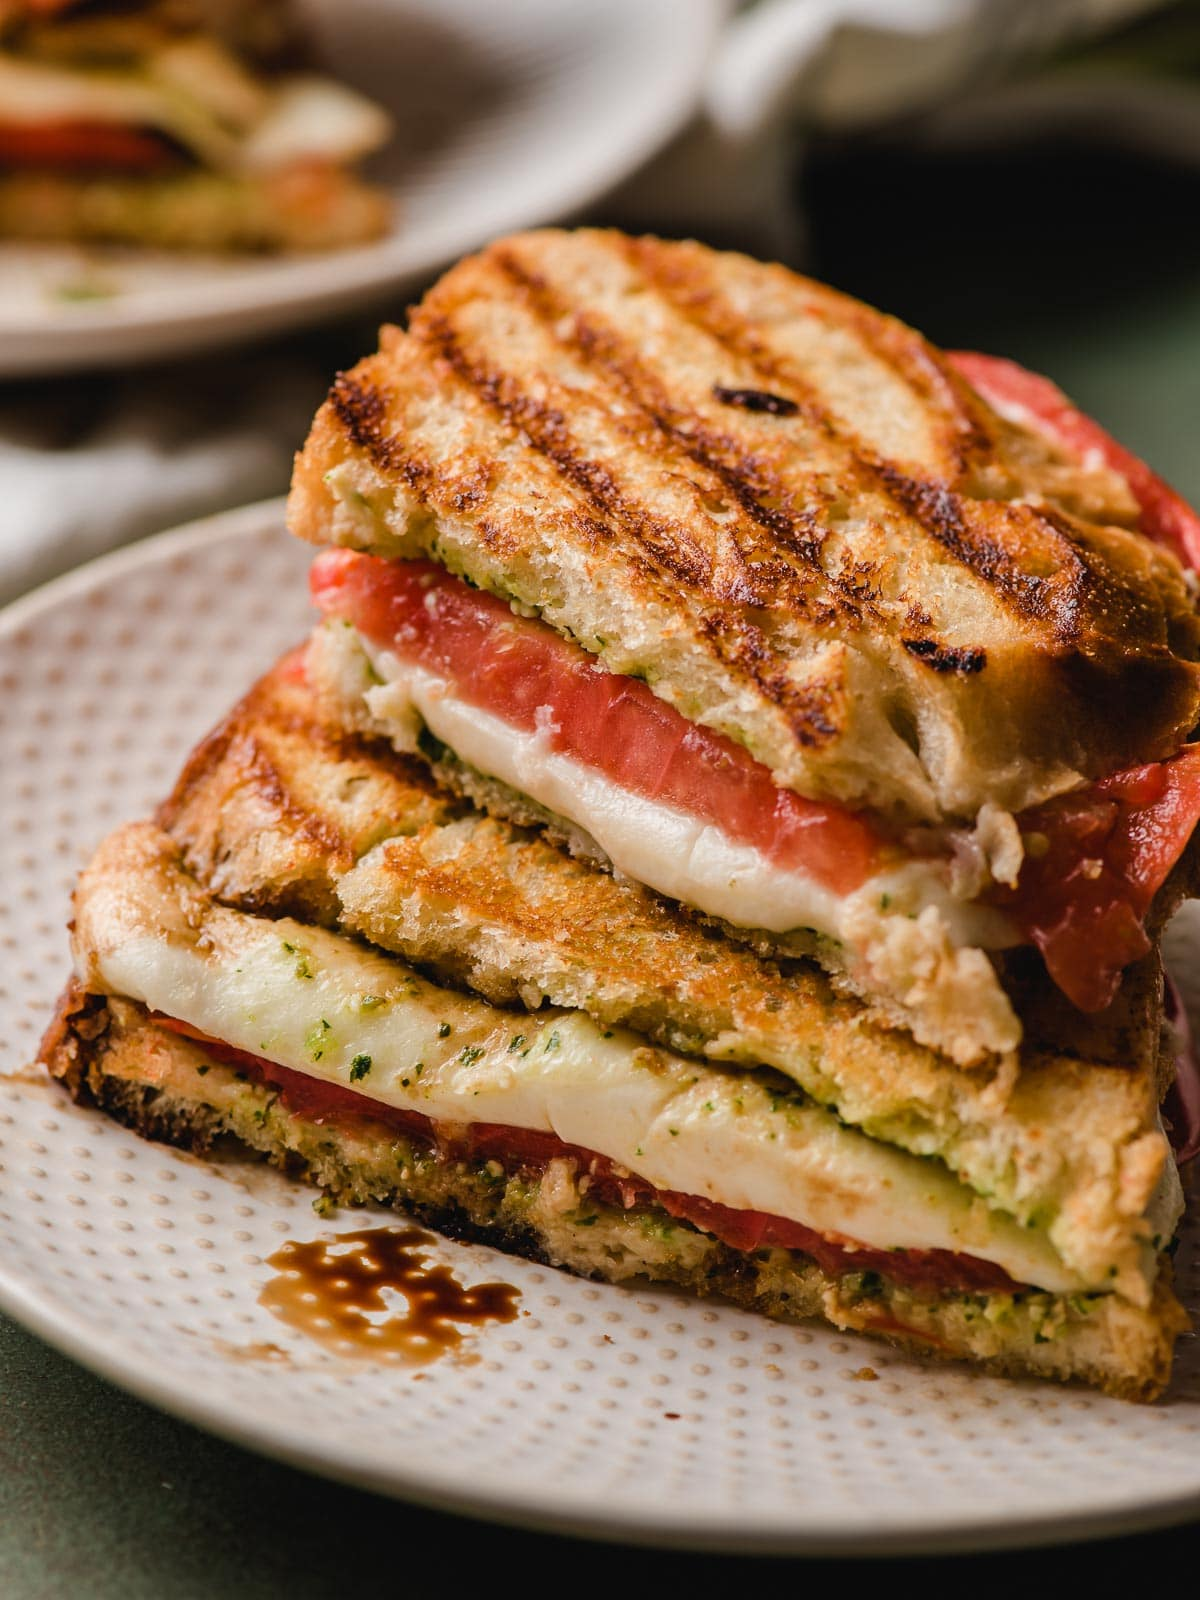 A grilled Caprese panini shown stacked on a white decorative plate.